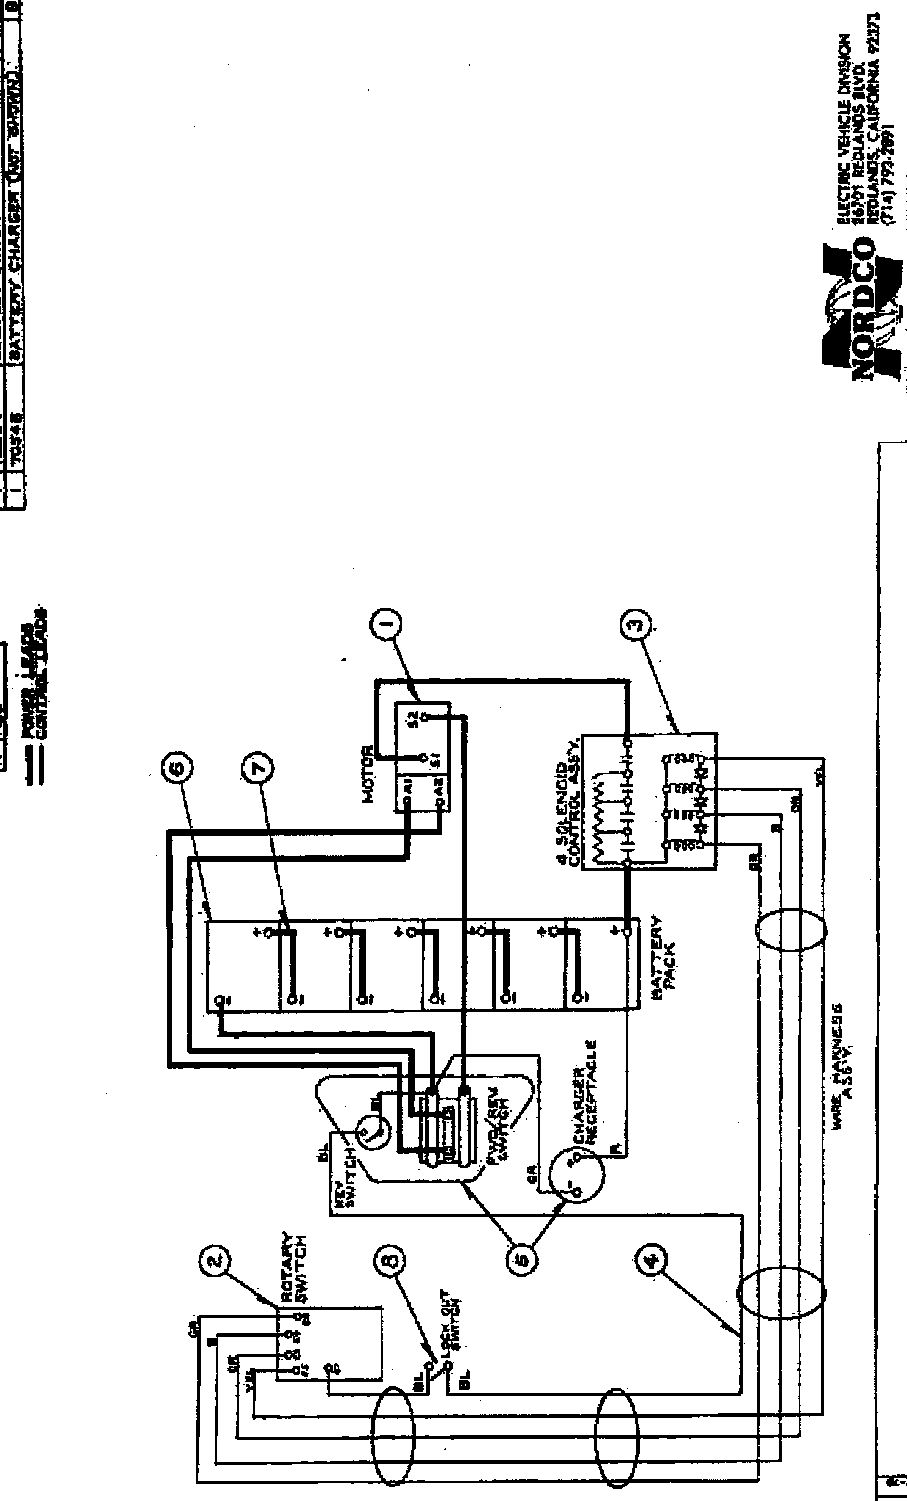 hight resolution of nordskog wiring diagram for a